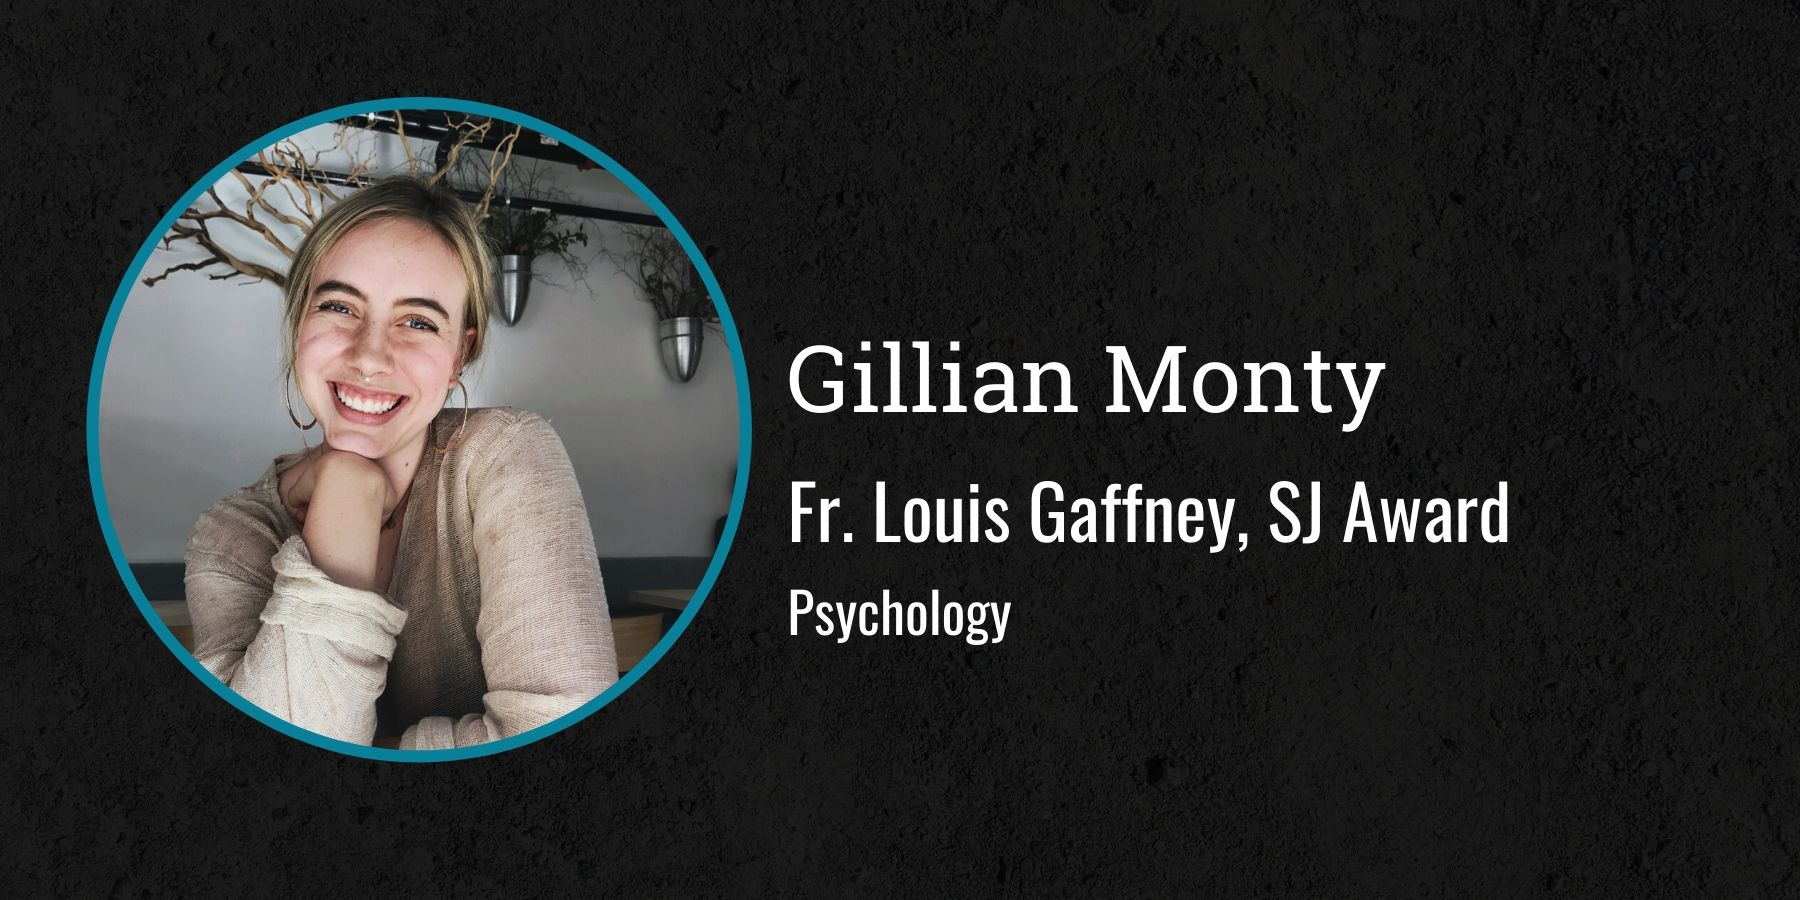 Photo of Gillian Monty and text Fr. Louis Gaffney, SJ Award, Psychology